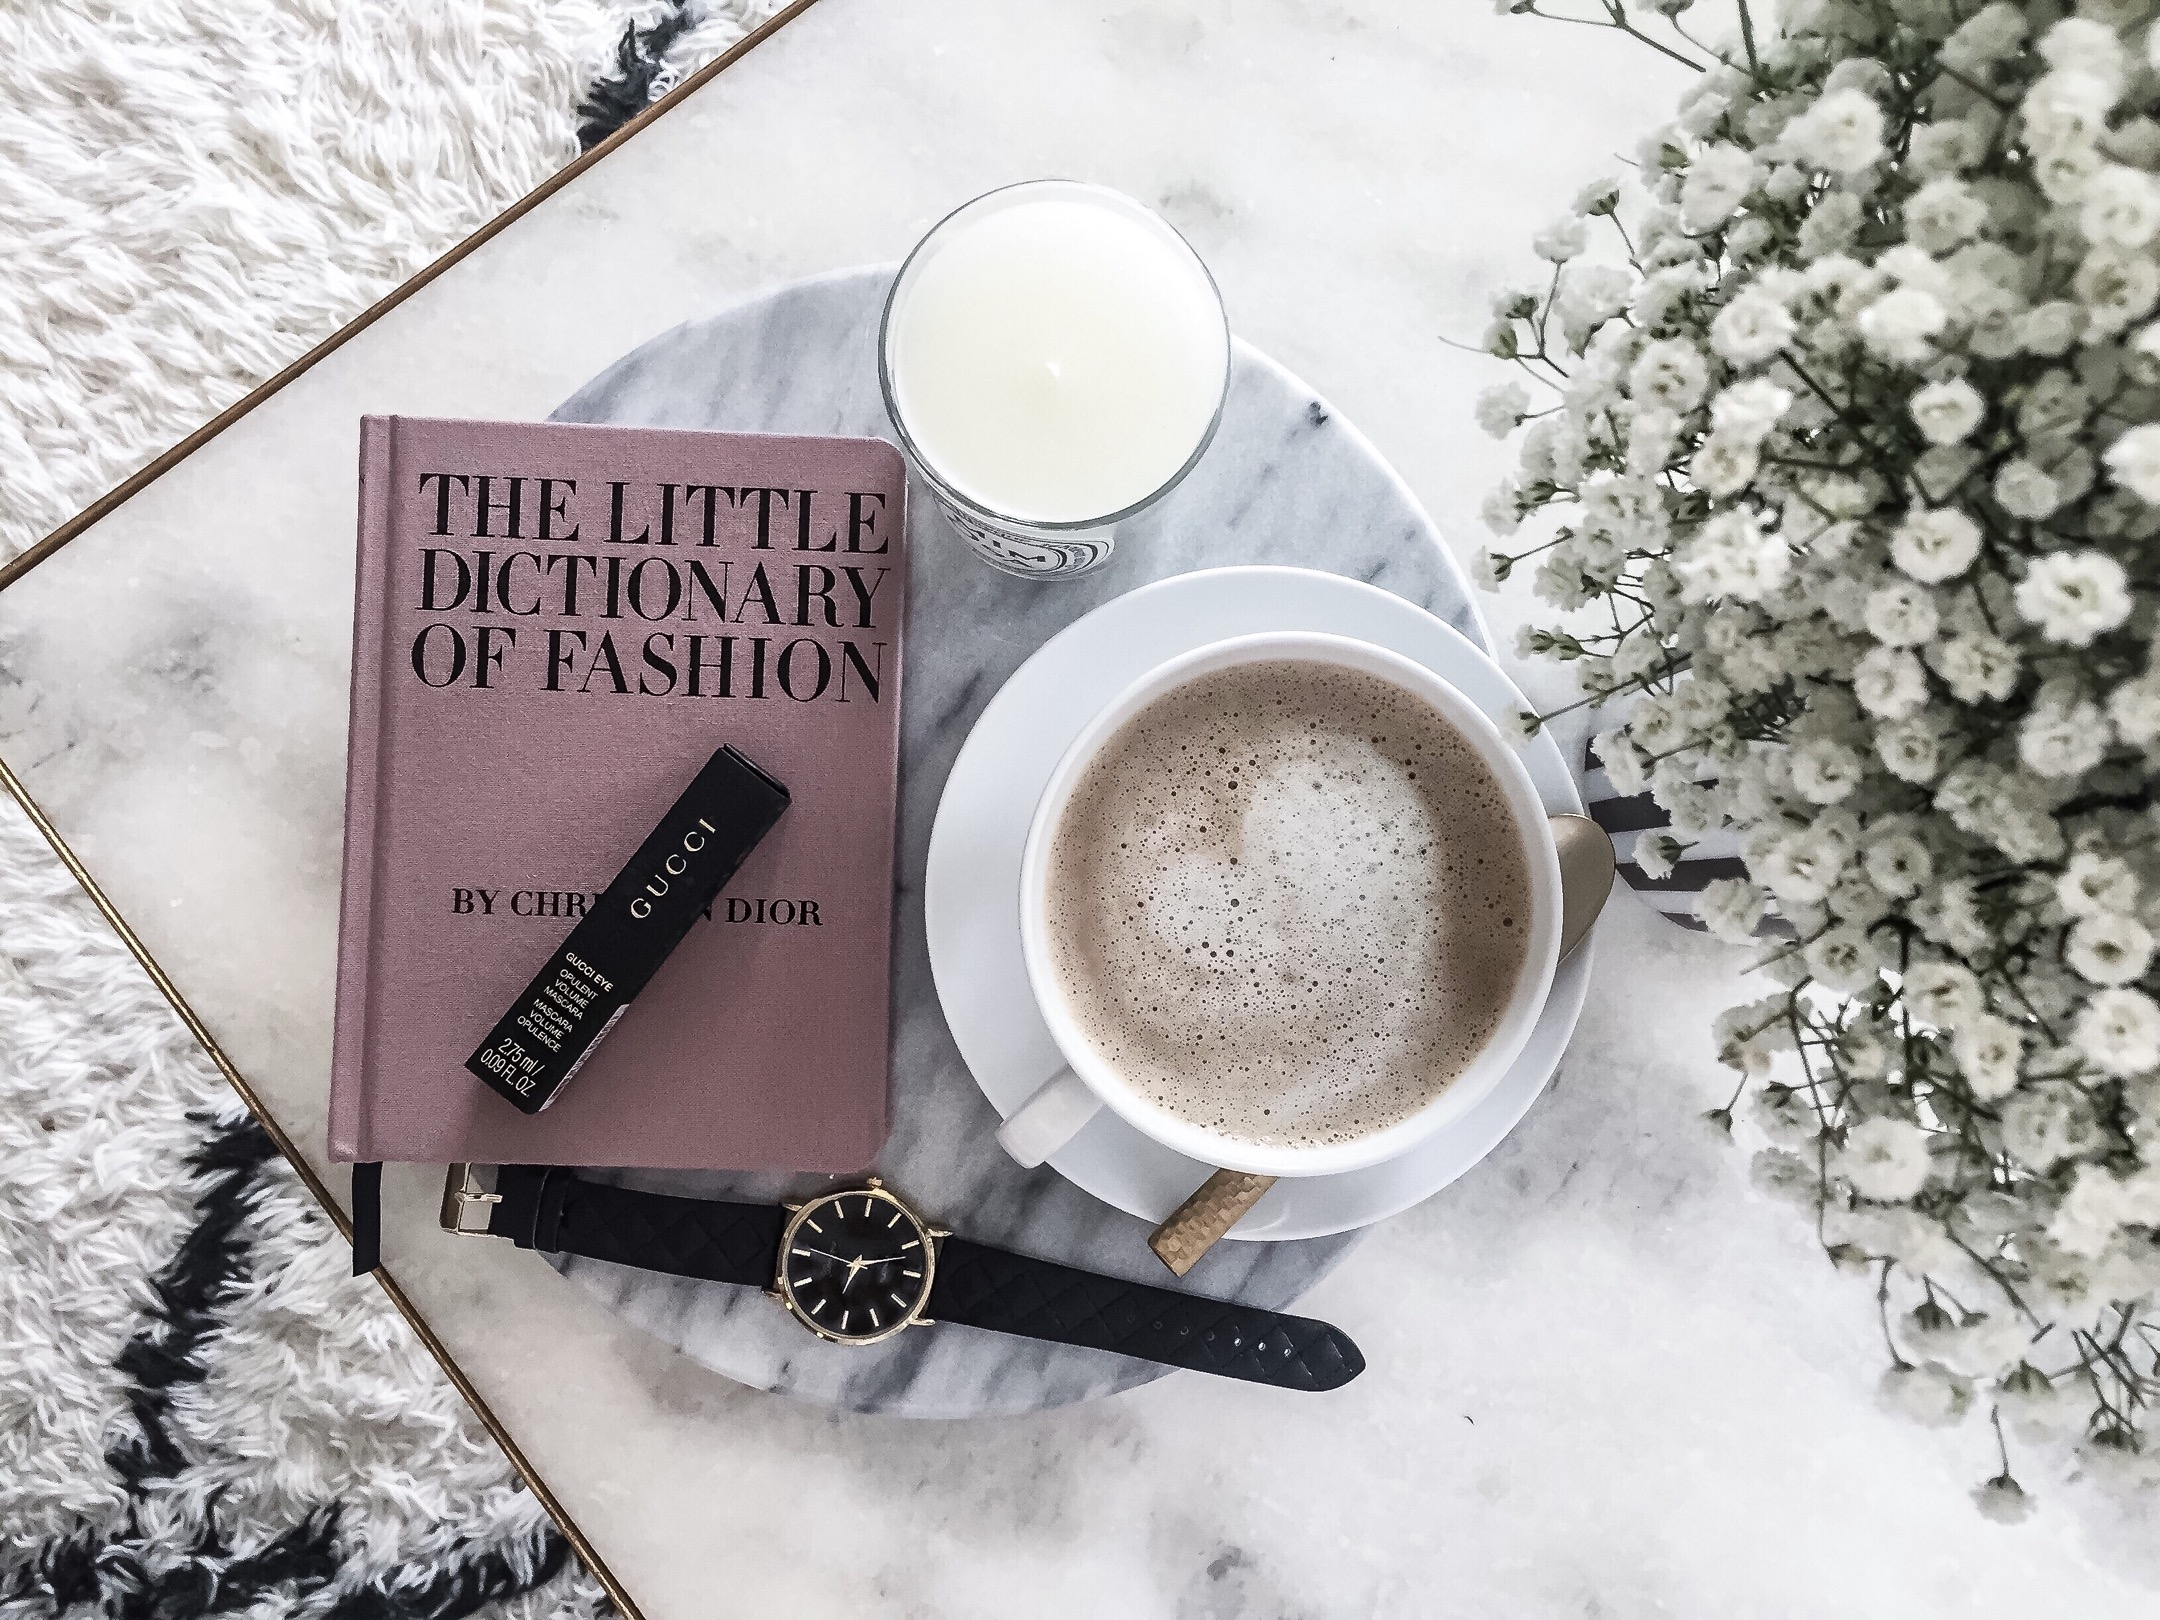 Houston style blogger Tiffany jais   The little dictionary of fashion book and a round marble serving tray